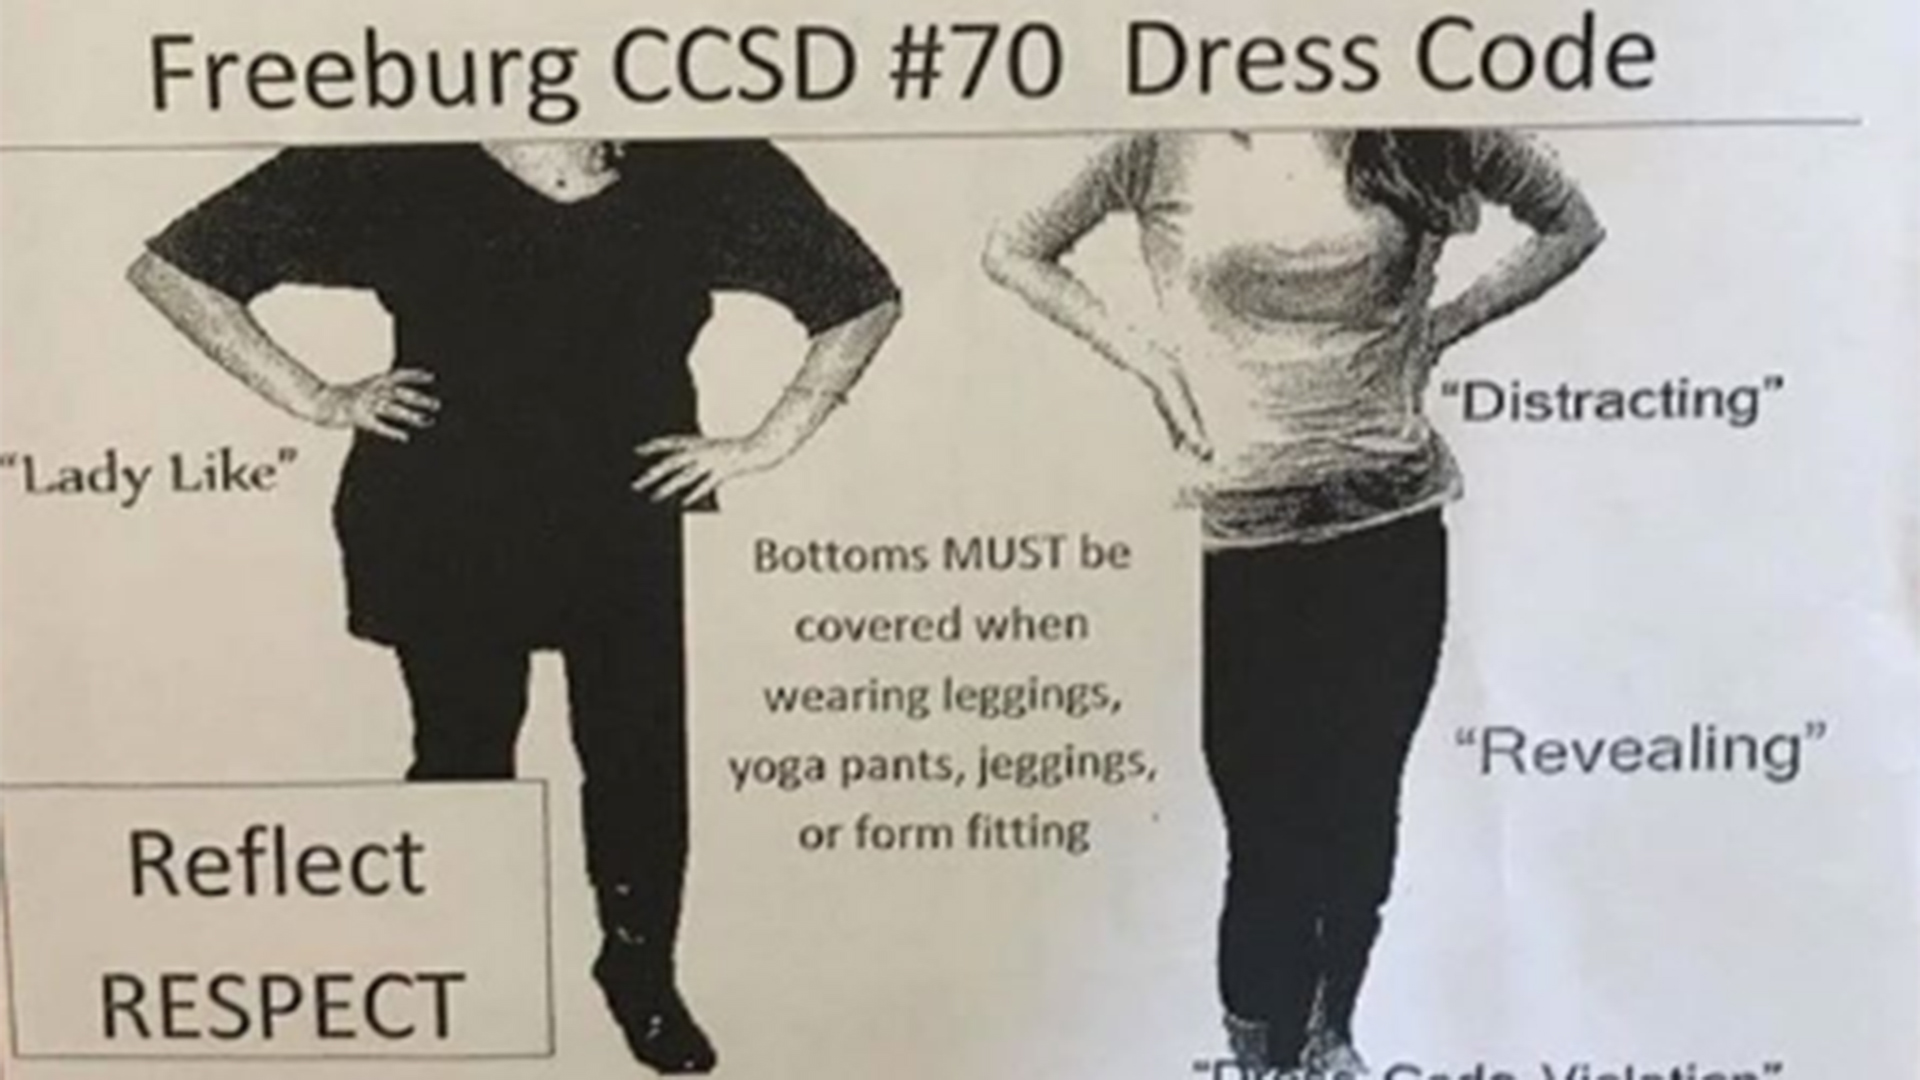 014 Satire Essay On School Dress Code Dresscode Today Tease